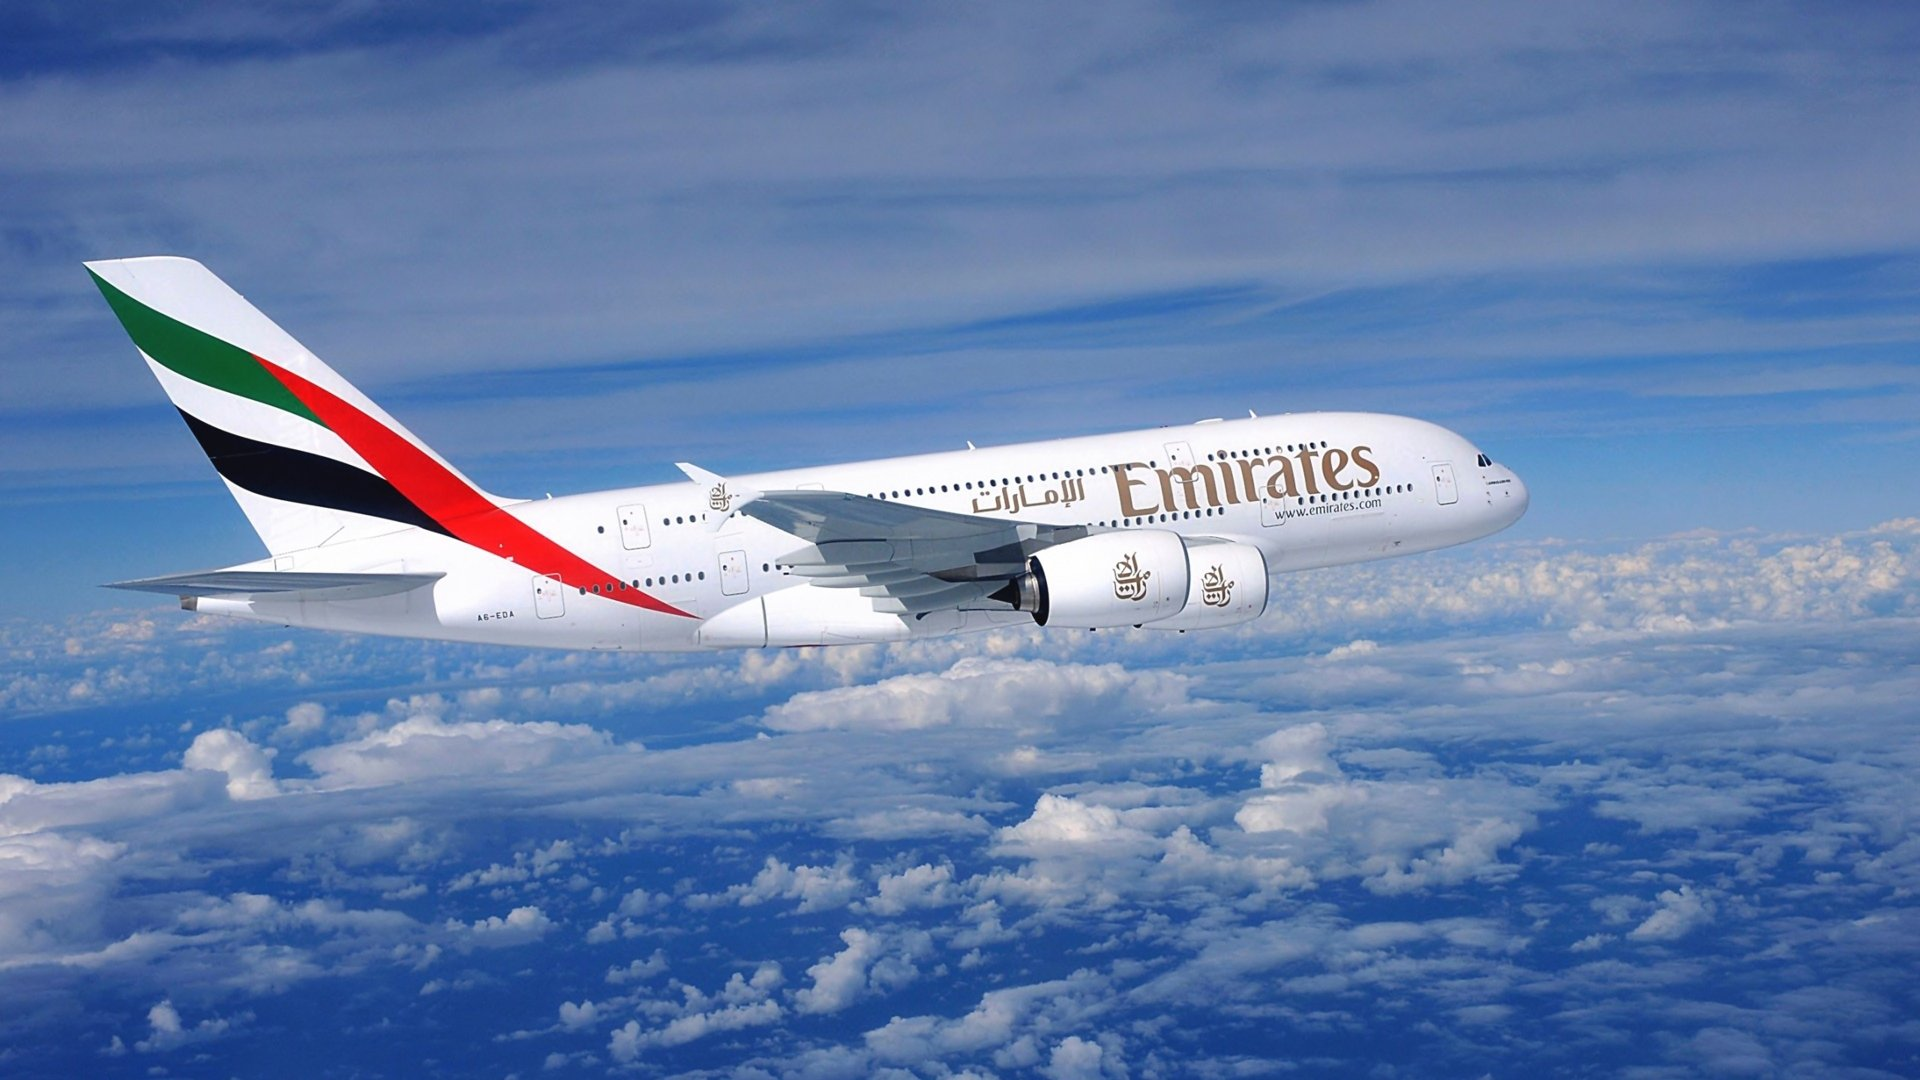 Vehicles - Airbus A380  Airplane Aircraft Emirates Cloud Wallpaper